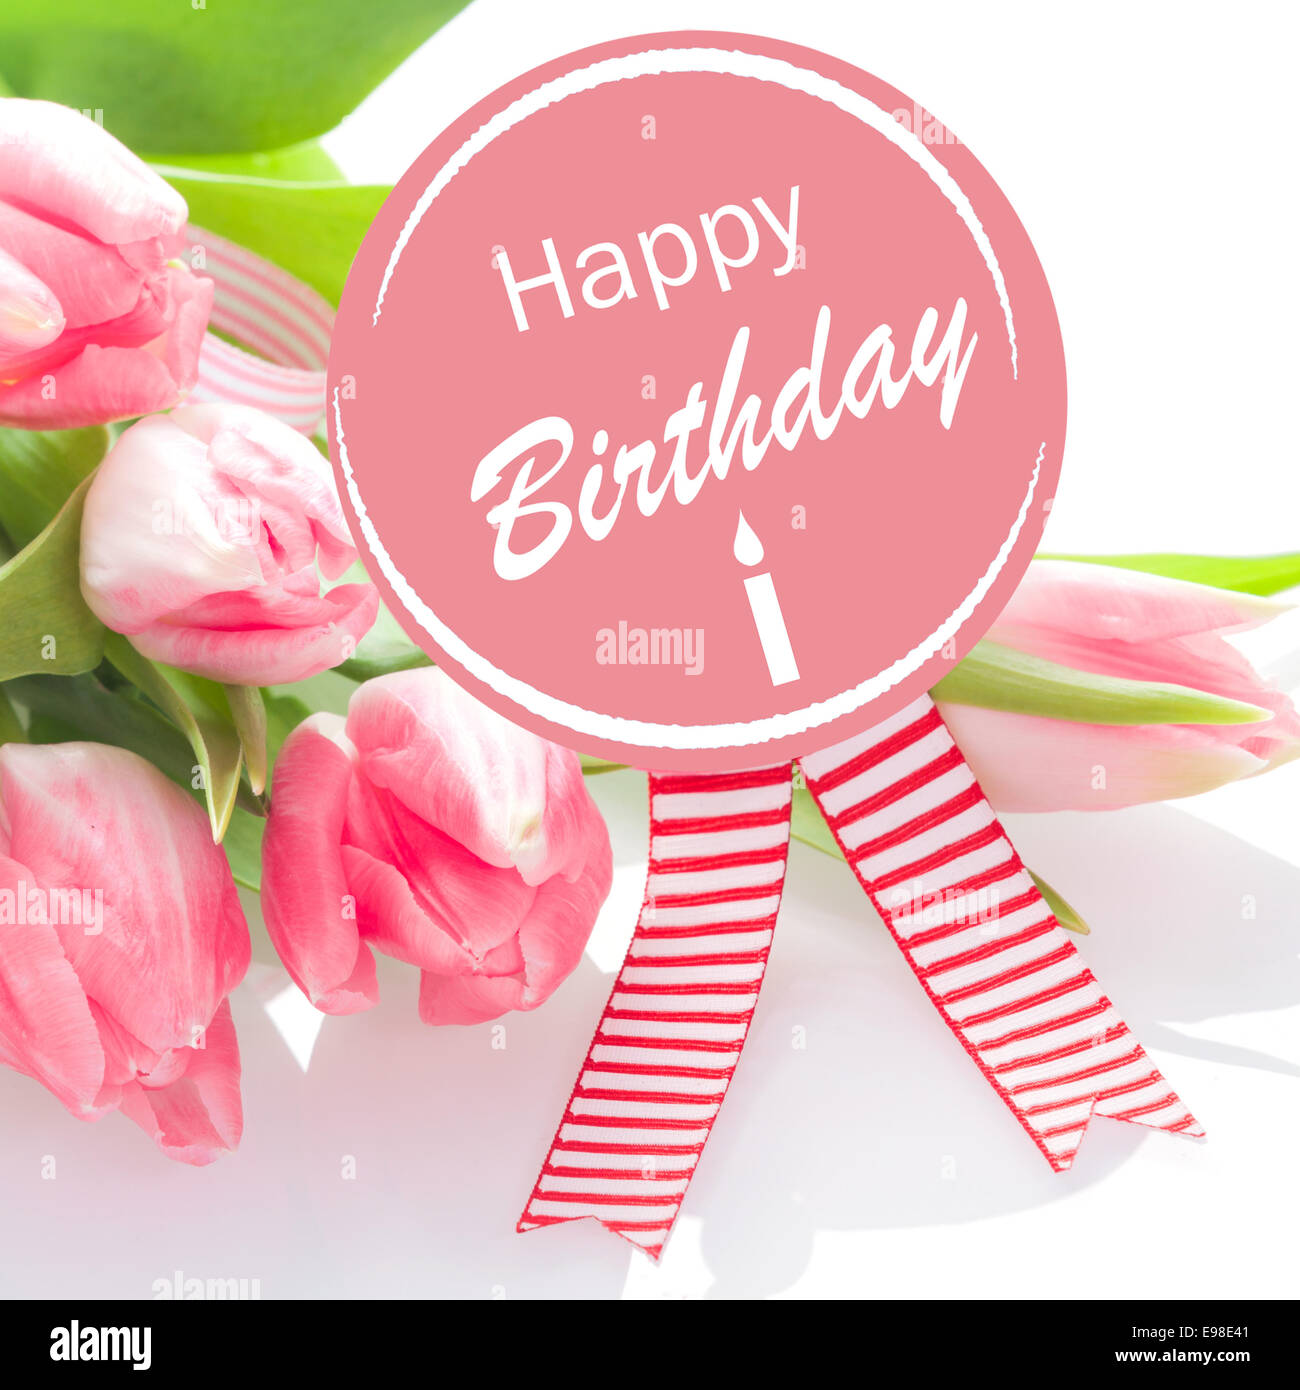 Happy Birthday Wishes On A Round Pink Rosette With Colourful Striped Ribbons Gift Of Bouquet Natural Fresh Tulips For Loved One Or